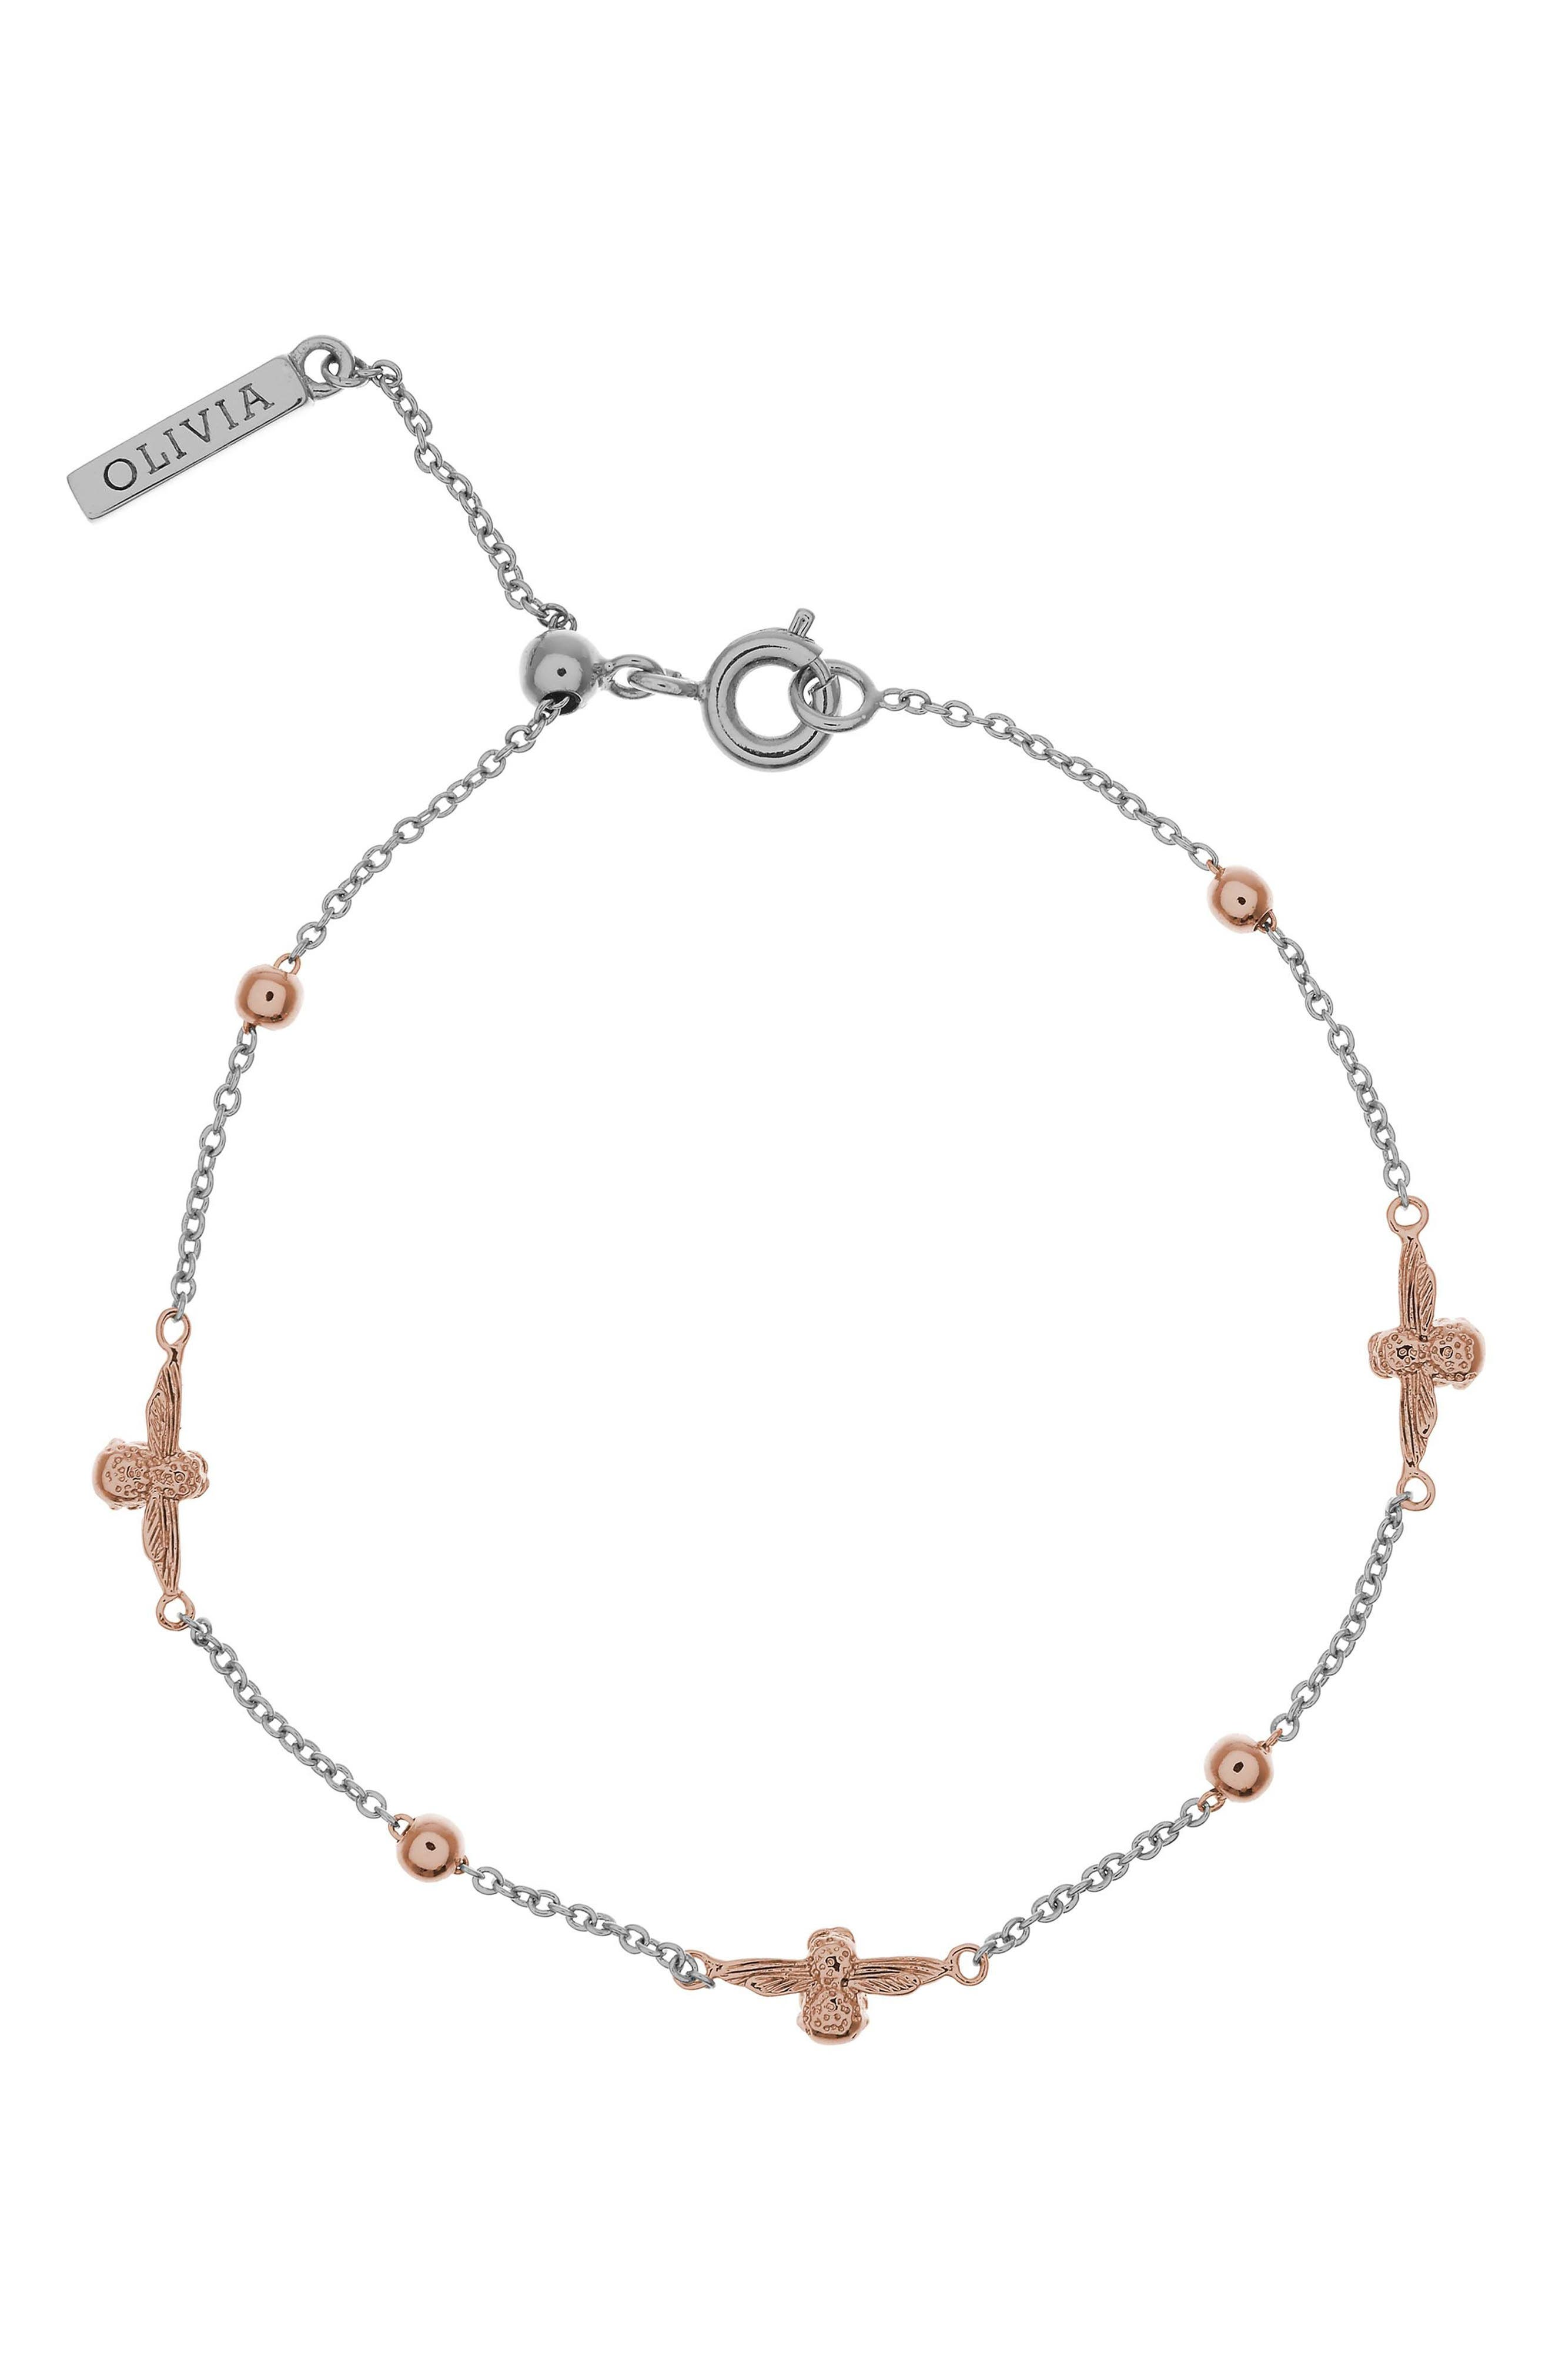 Queen Bee Ball Chain Bracelet,                         Main,                         color, SILVER/ ROSE GOLD